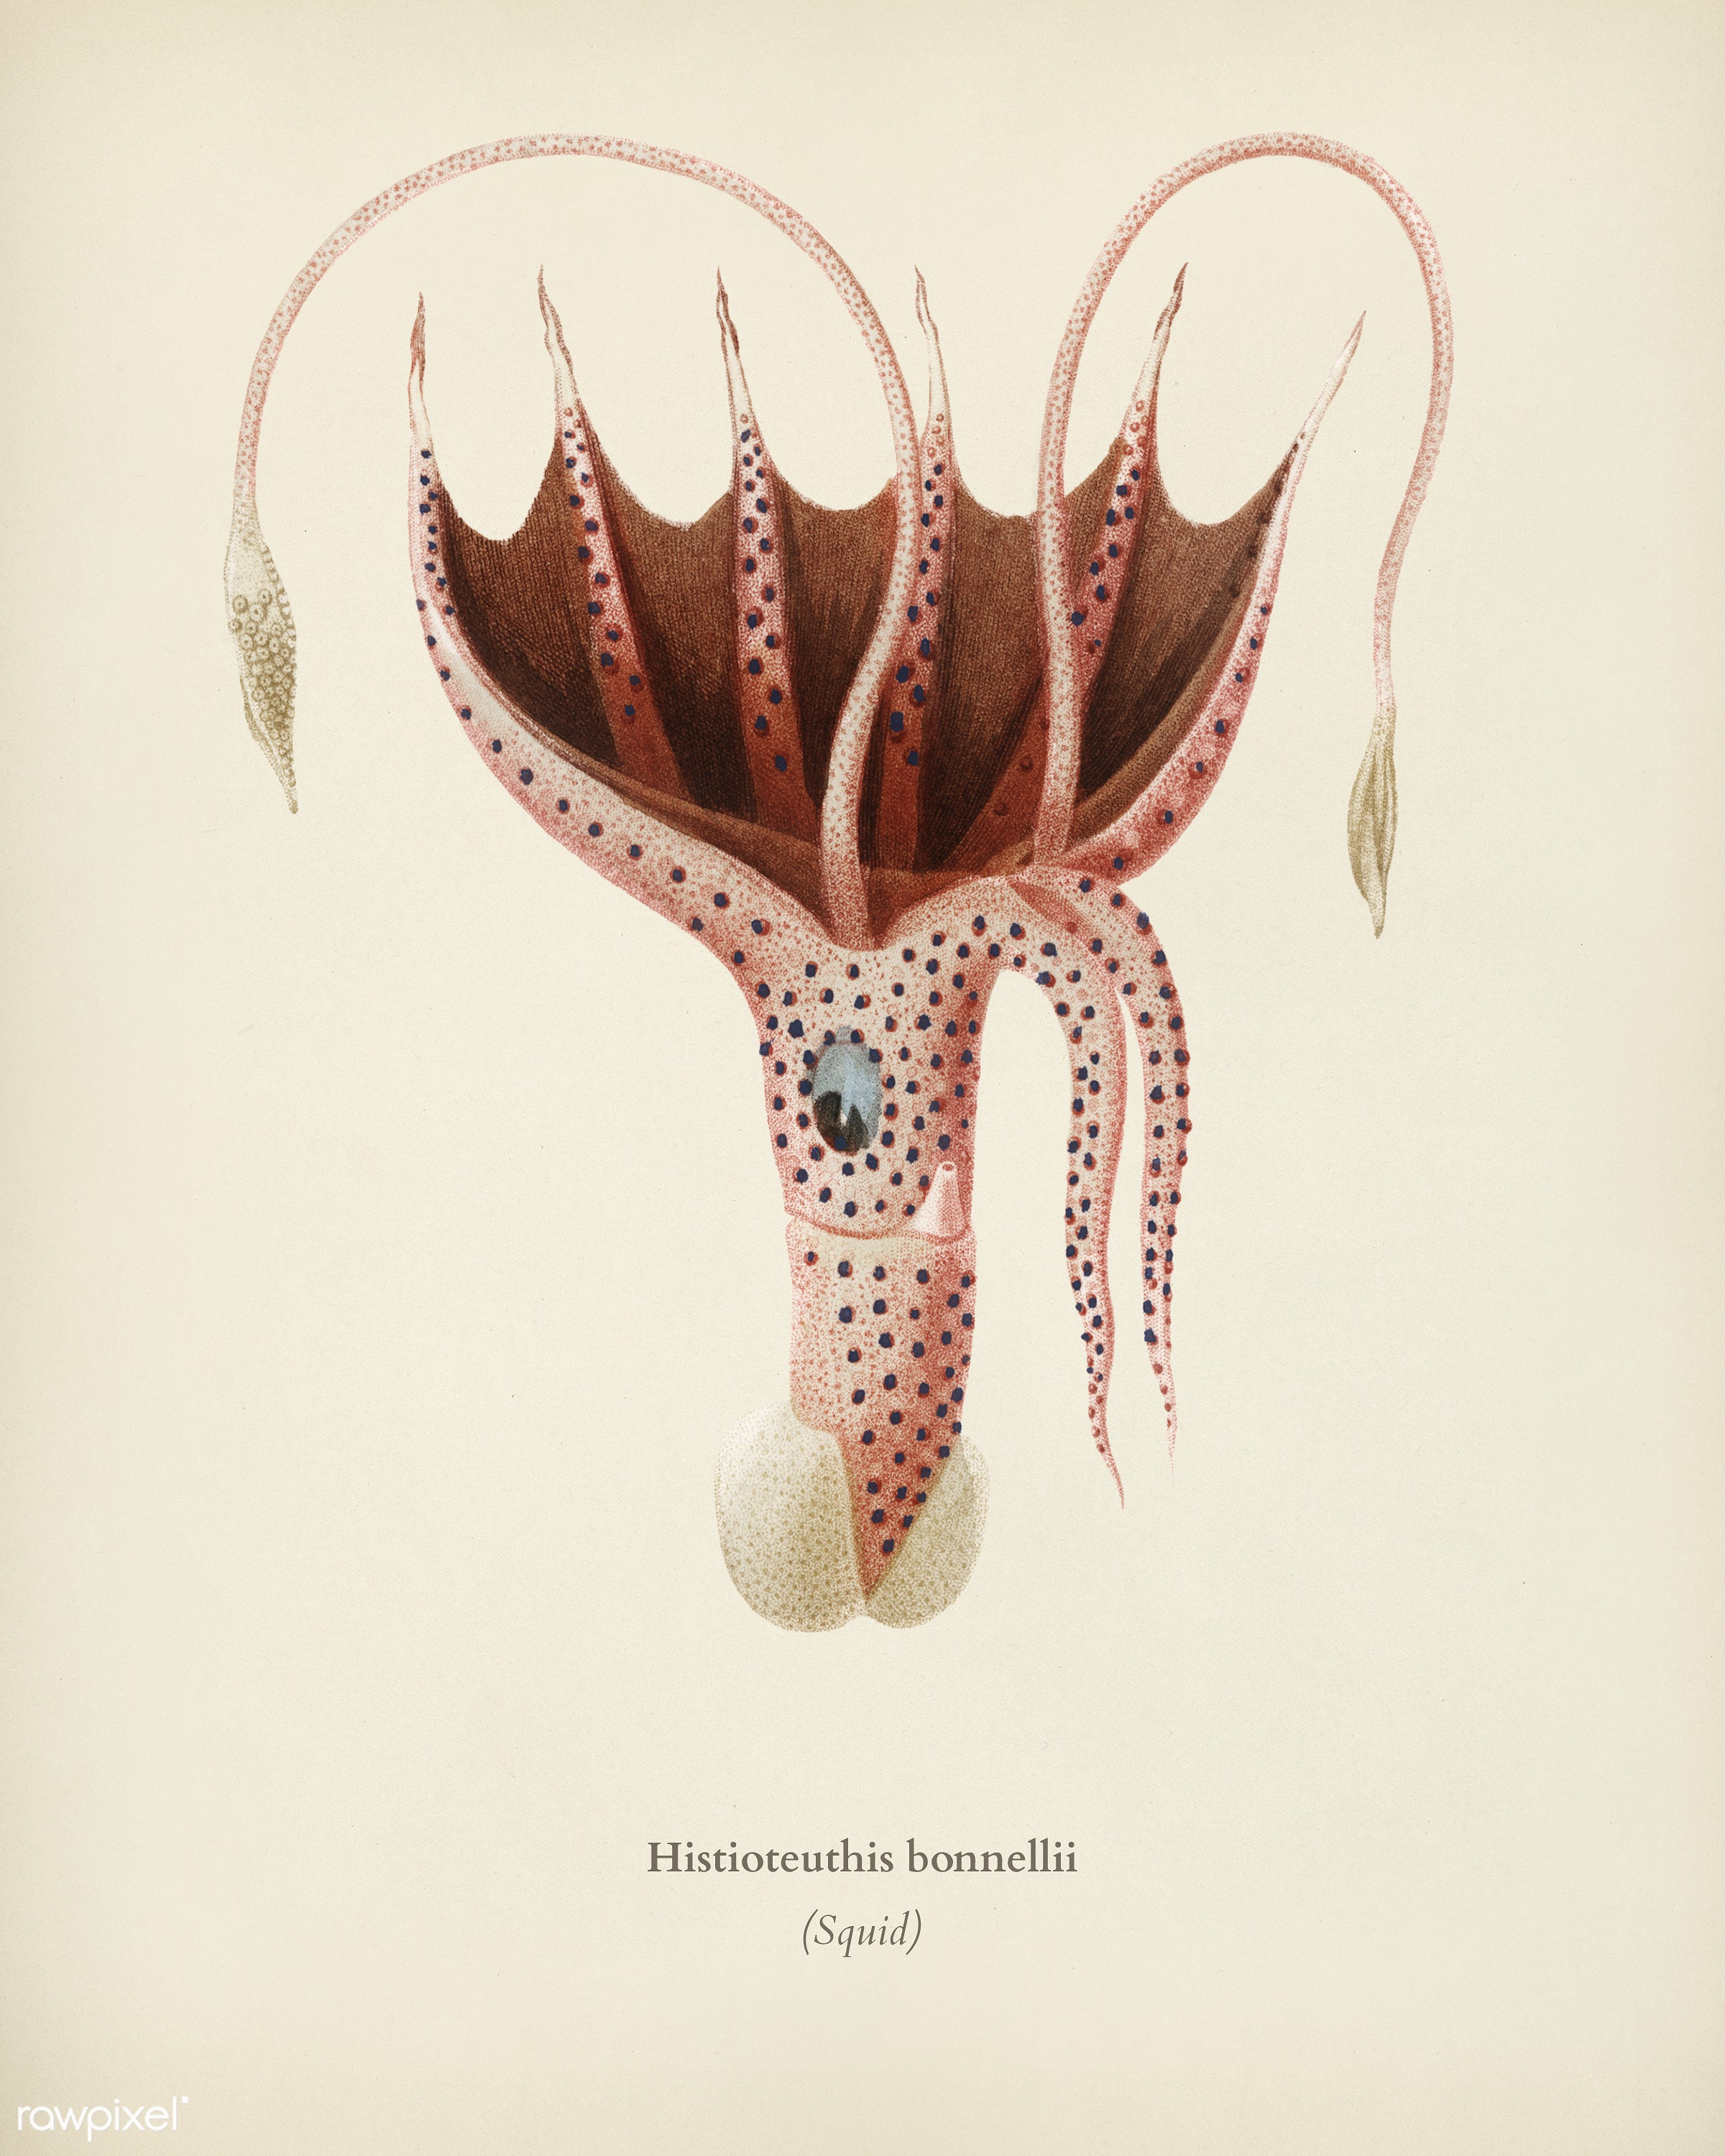 The umbrella squid (Histioteuthis bonnellii) illustrated by Charles Dessalines D' Orbigny (1806-1876). Digitally...